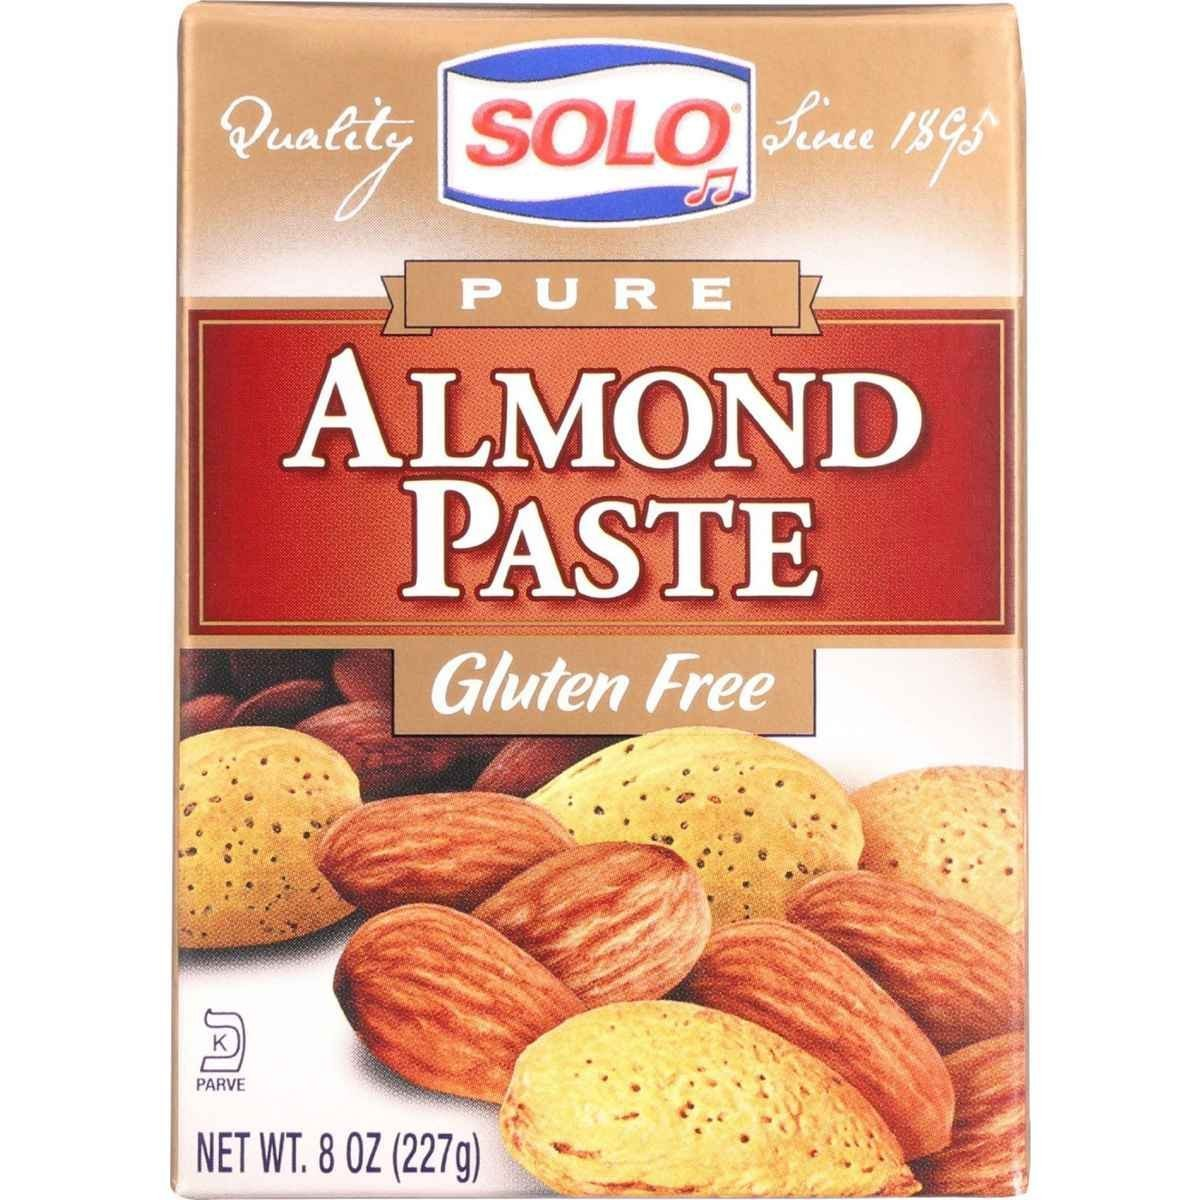 Solo Foods Almond Paste Pure, 8 oz. Pack of 12 by Solo Foods